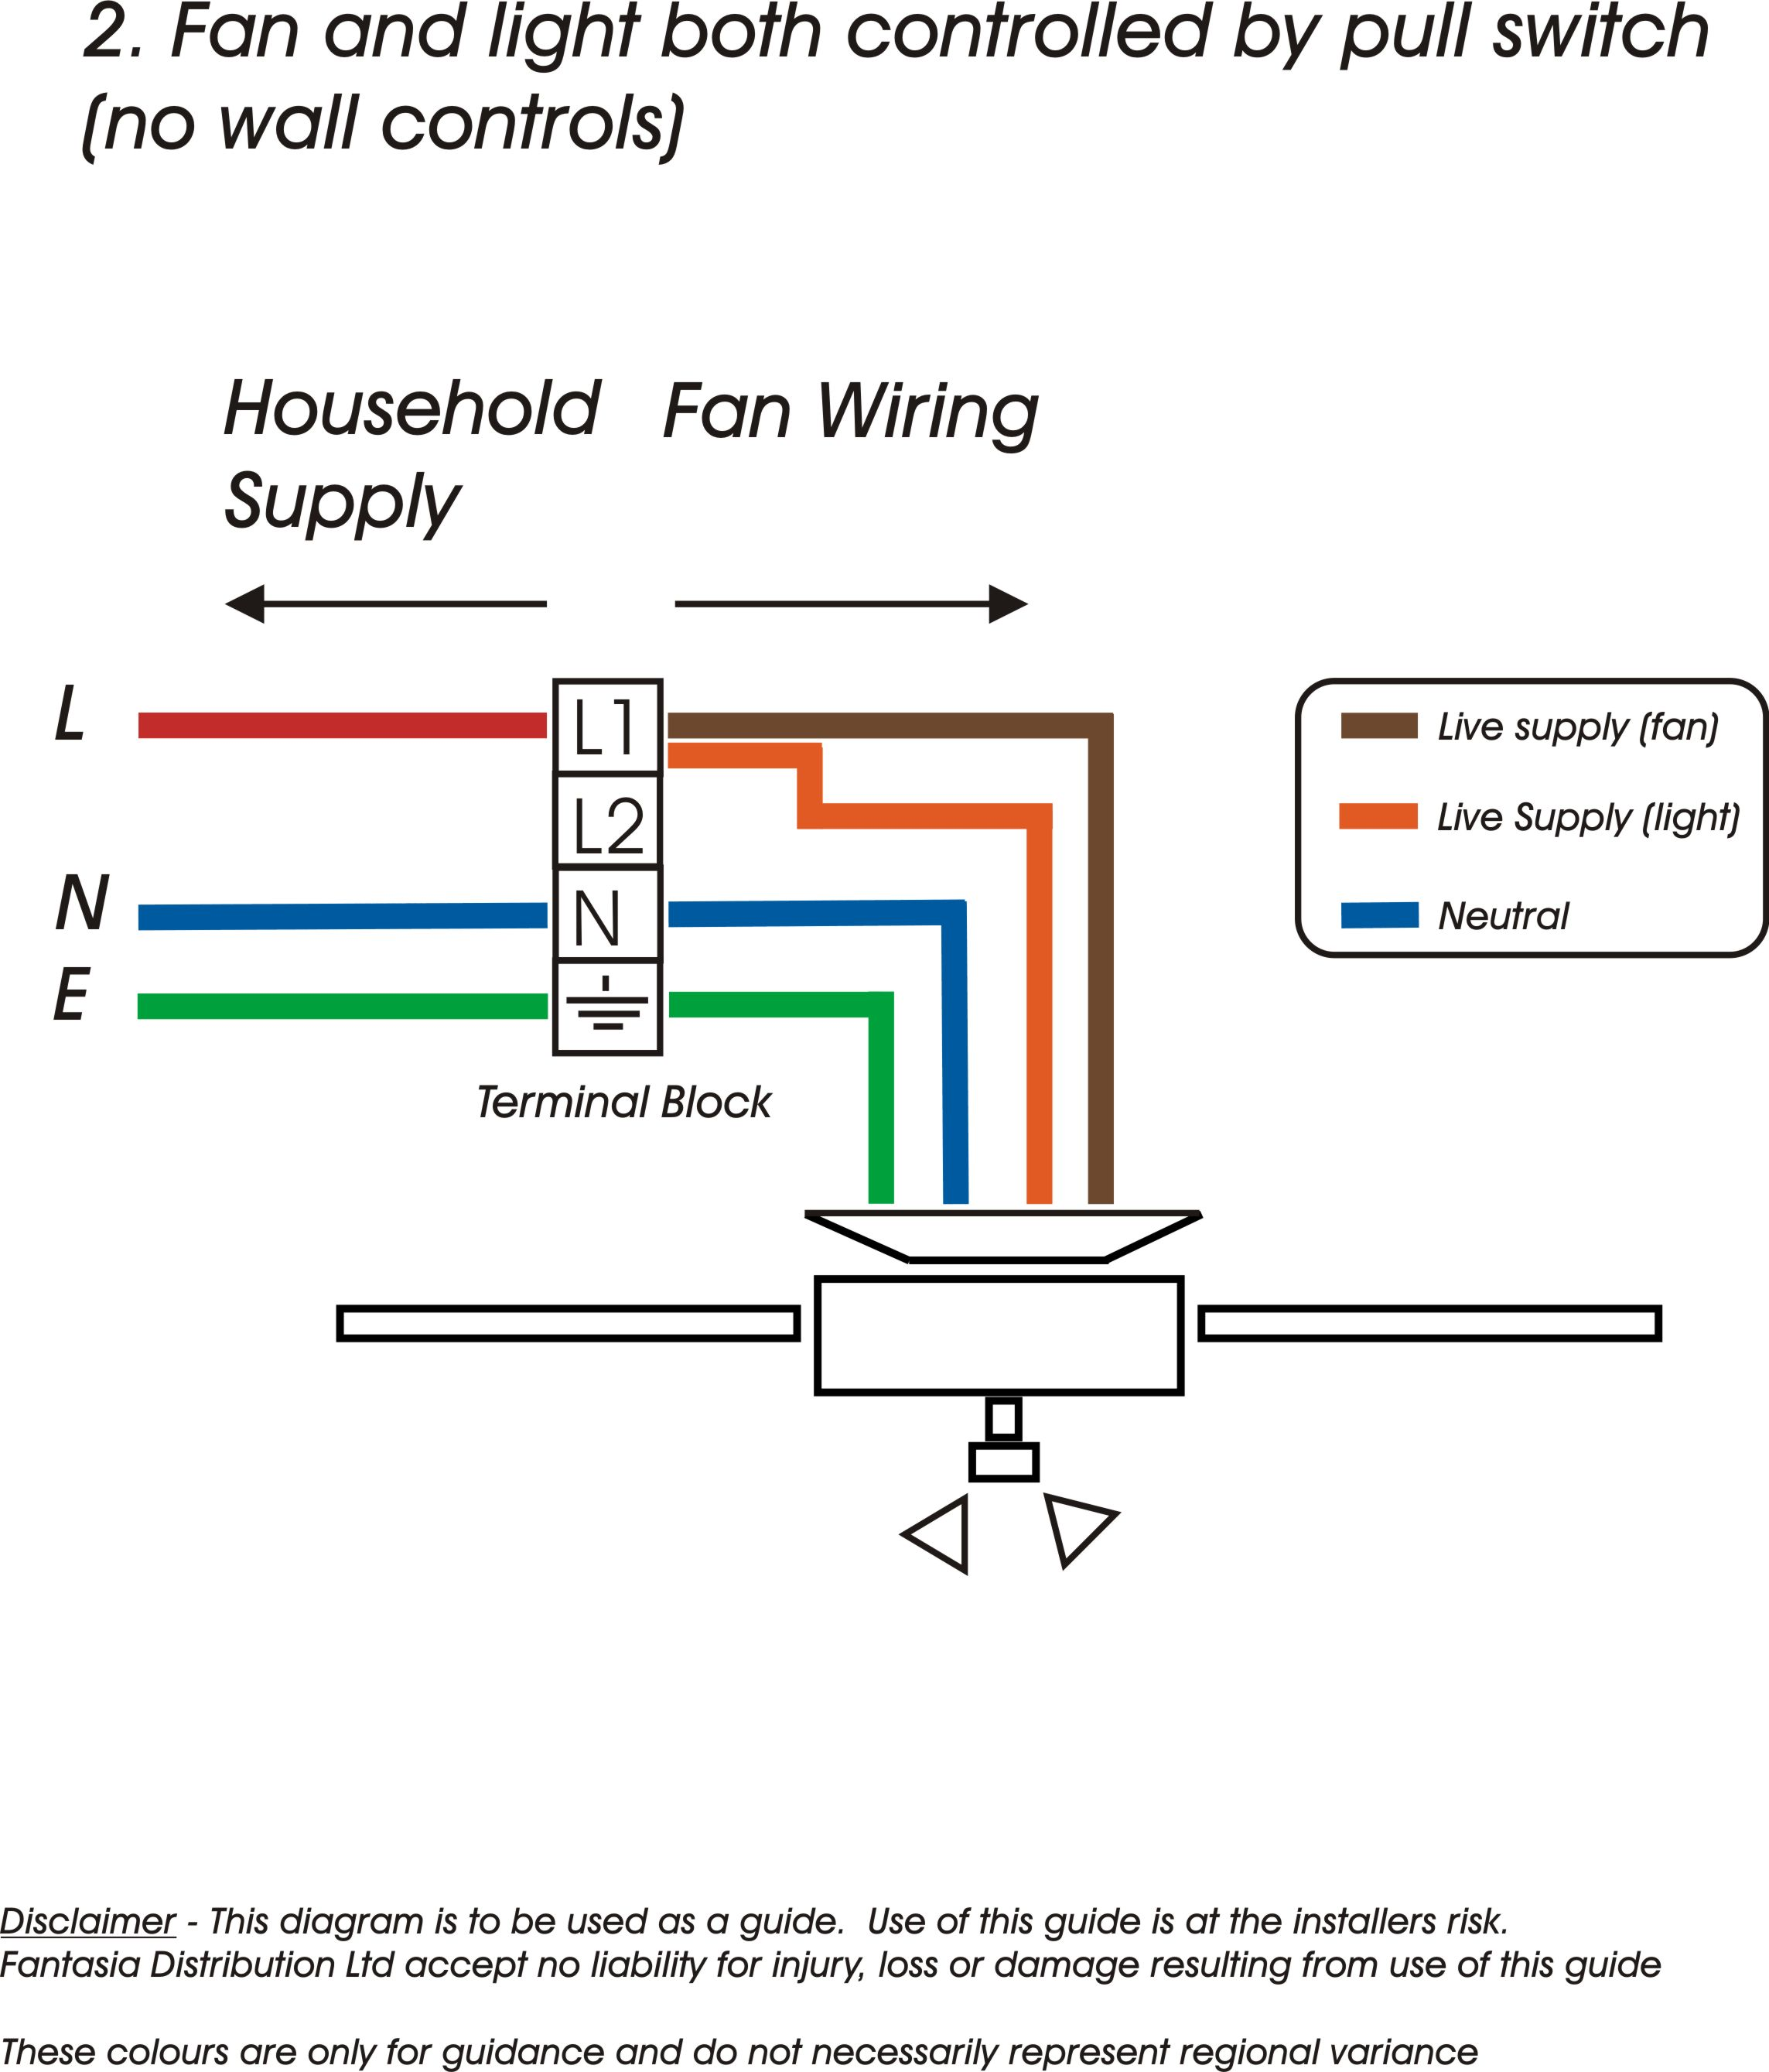 wiring ceiling fans 2?resize=800%2C937 wiring a ceiling fan diagram wiring a hot tub diagram, wiring a ceiling fan diagram wiring at couponss.co